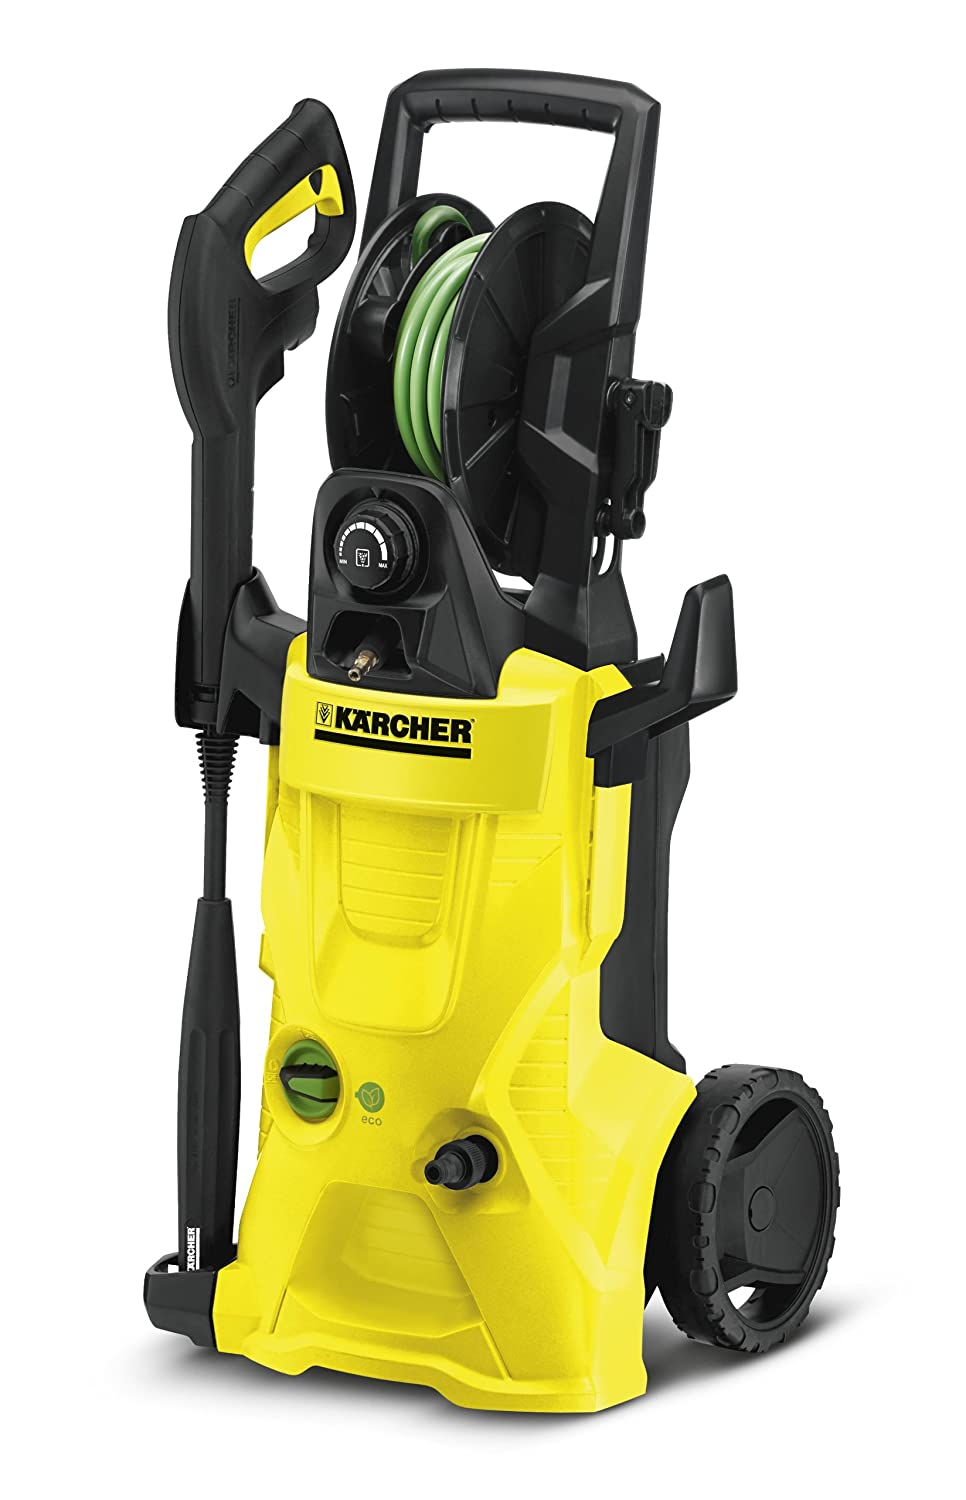 karcher k4 premium eco home water cooled pressure washer. Black Bedroom Furniture Sets. Home Design Ideas